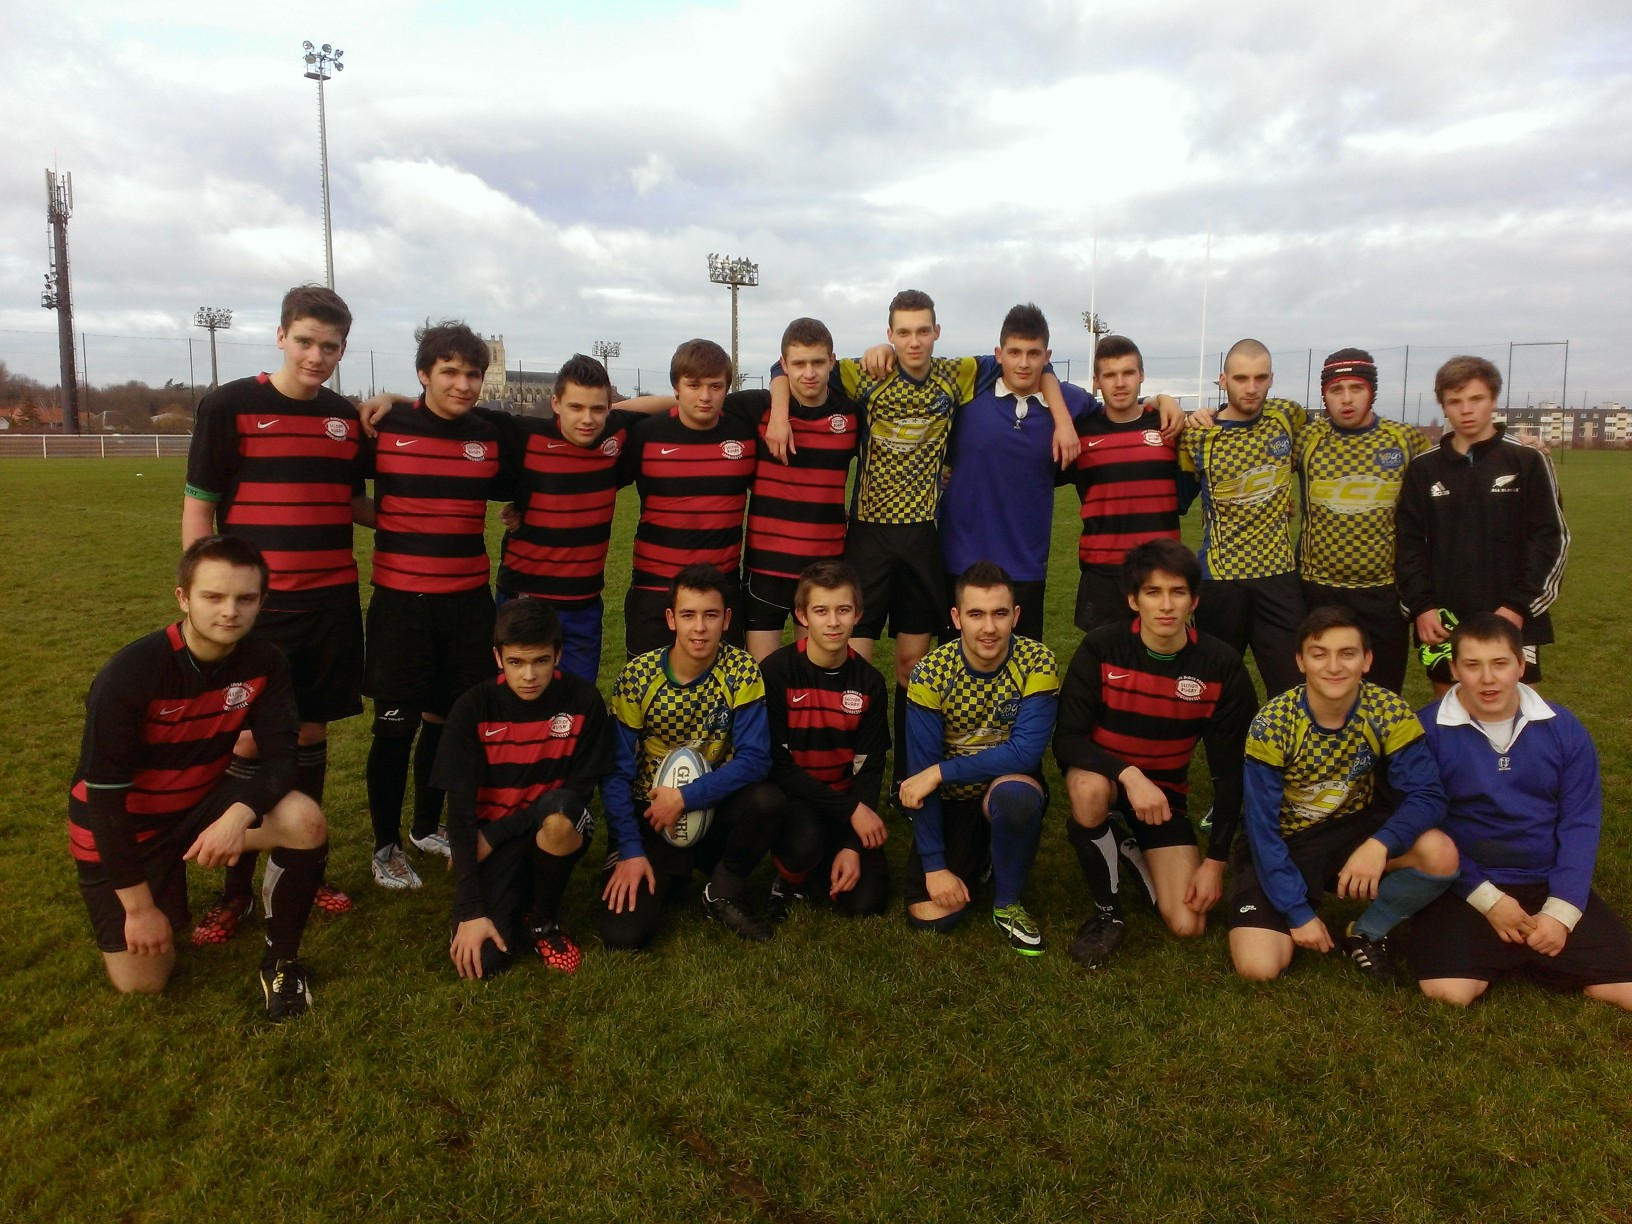 Rugby St OMER 2014-12-17